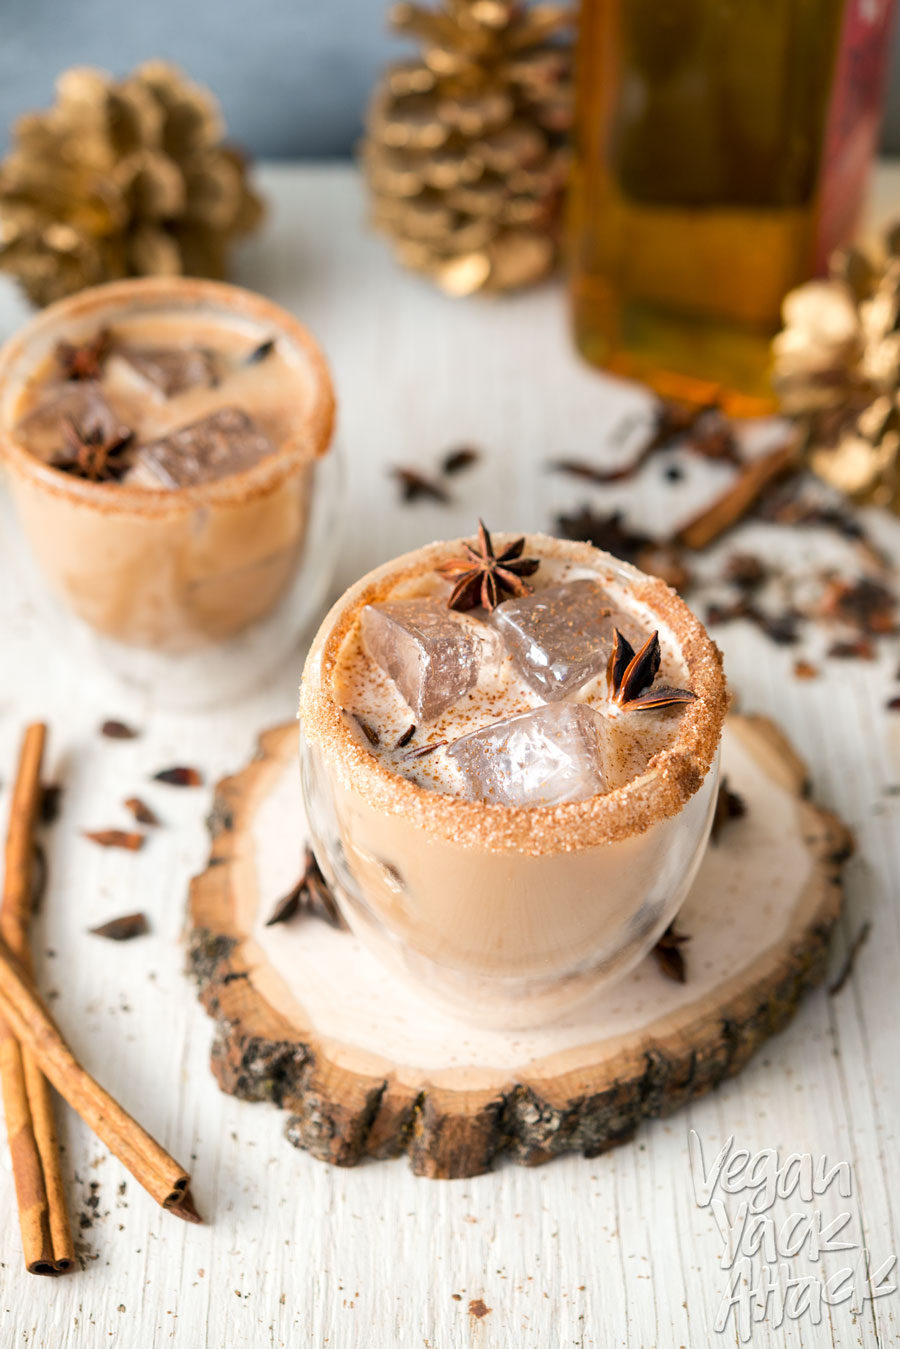 This Iced Cinnamon Whiskey Chai is spicy, cool and perfect for the holidays! Made with delicious Rebbl Ashwaganda Chai Elixir @Veganyackattack #rebbl #recipe